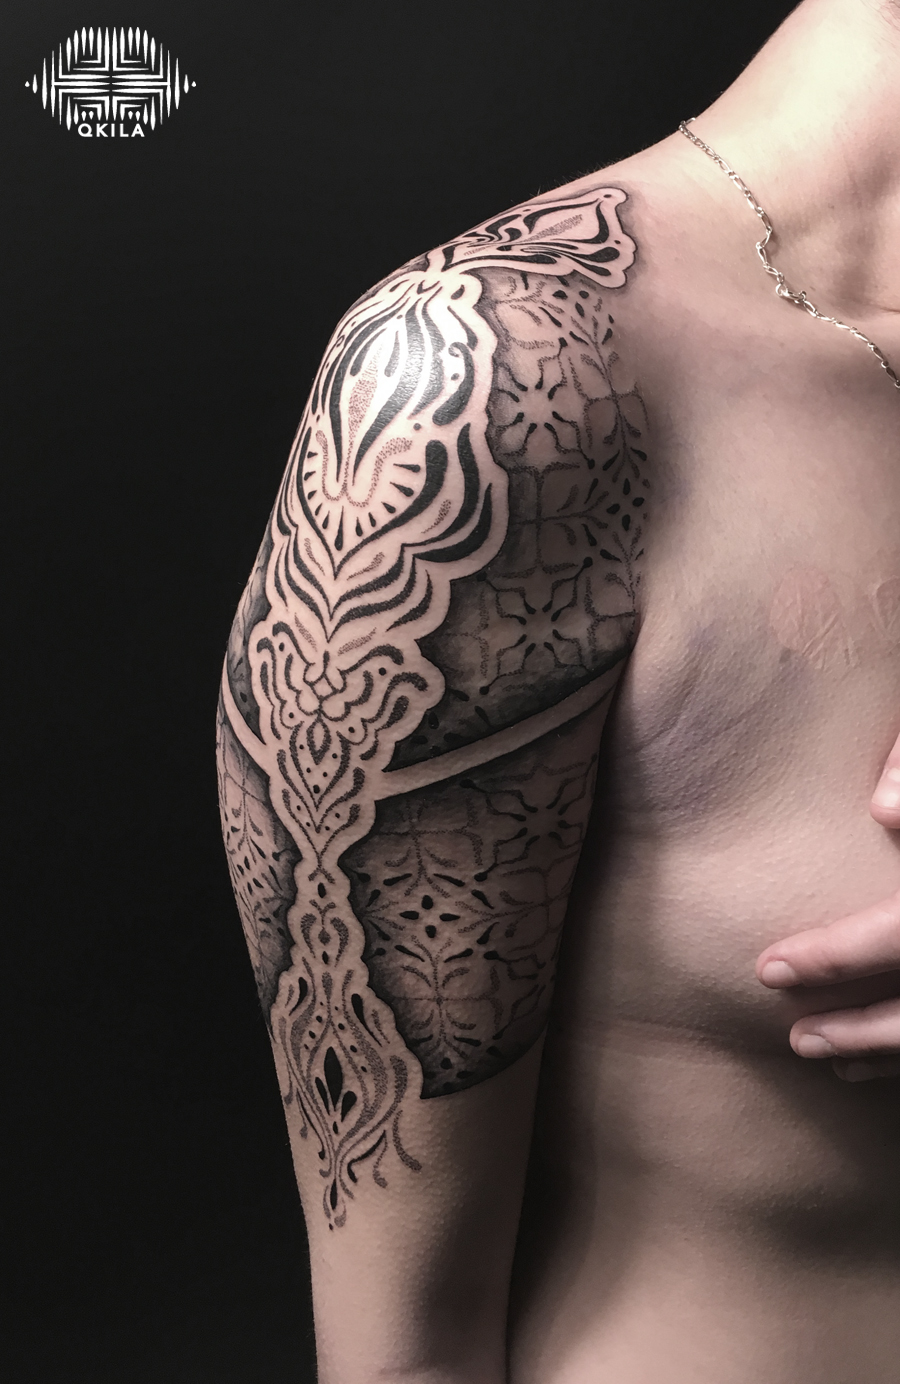 black contrast,patterns tattoo,op art, sleeves tattoo, dotwork tattoo, qkila,geometric tattoo, ethnique tattoo, les tatoués anonymes, nimes